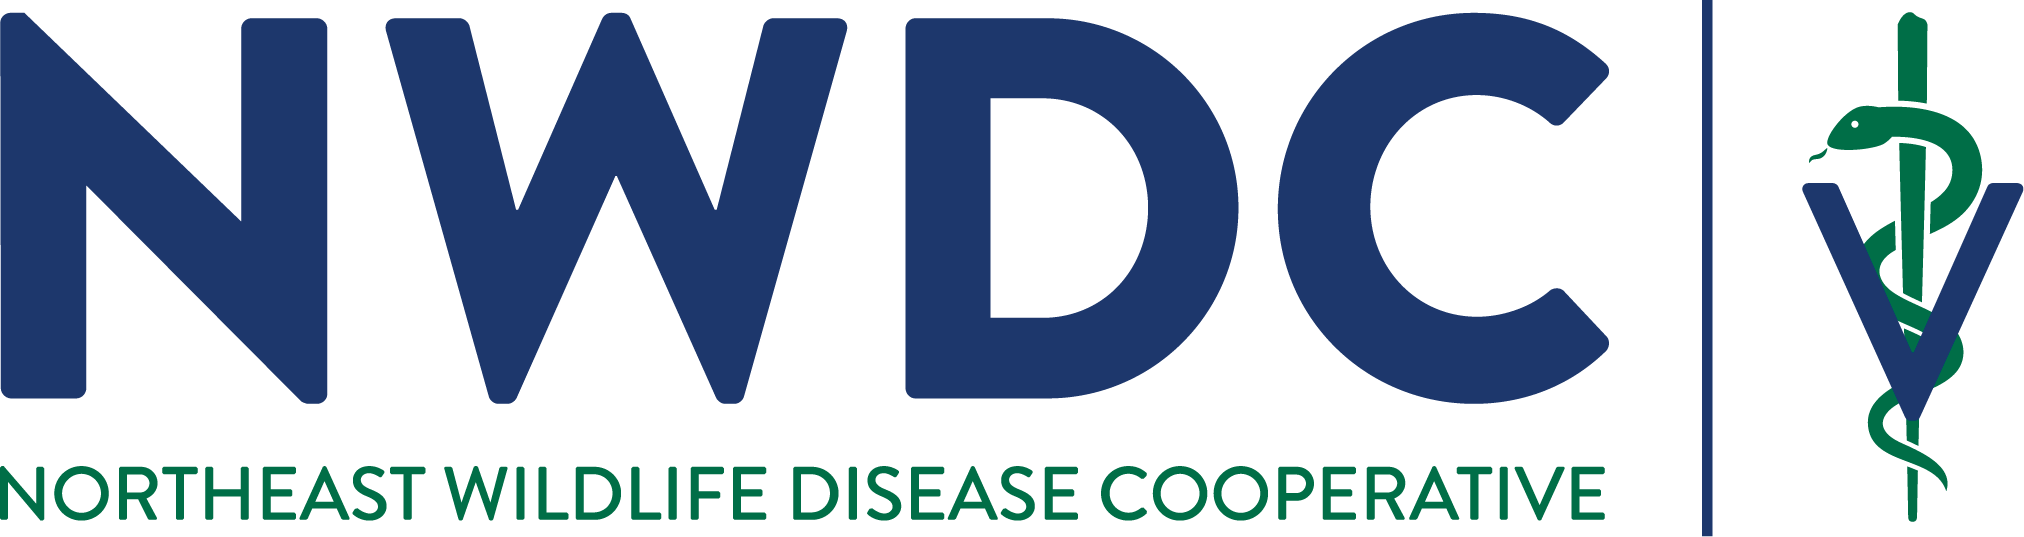 Northeast Wildlife Disease Cooperative logo image